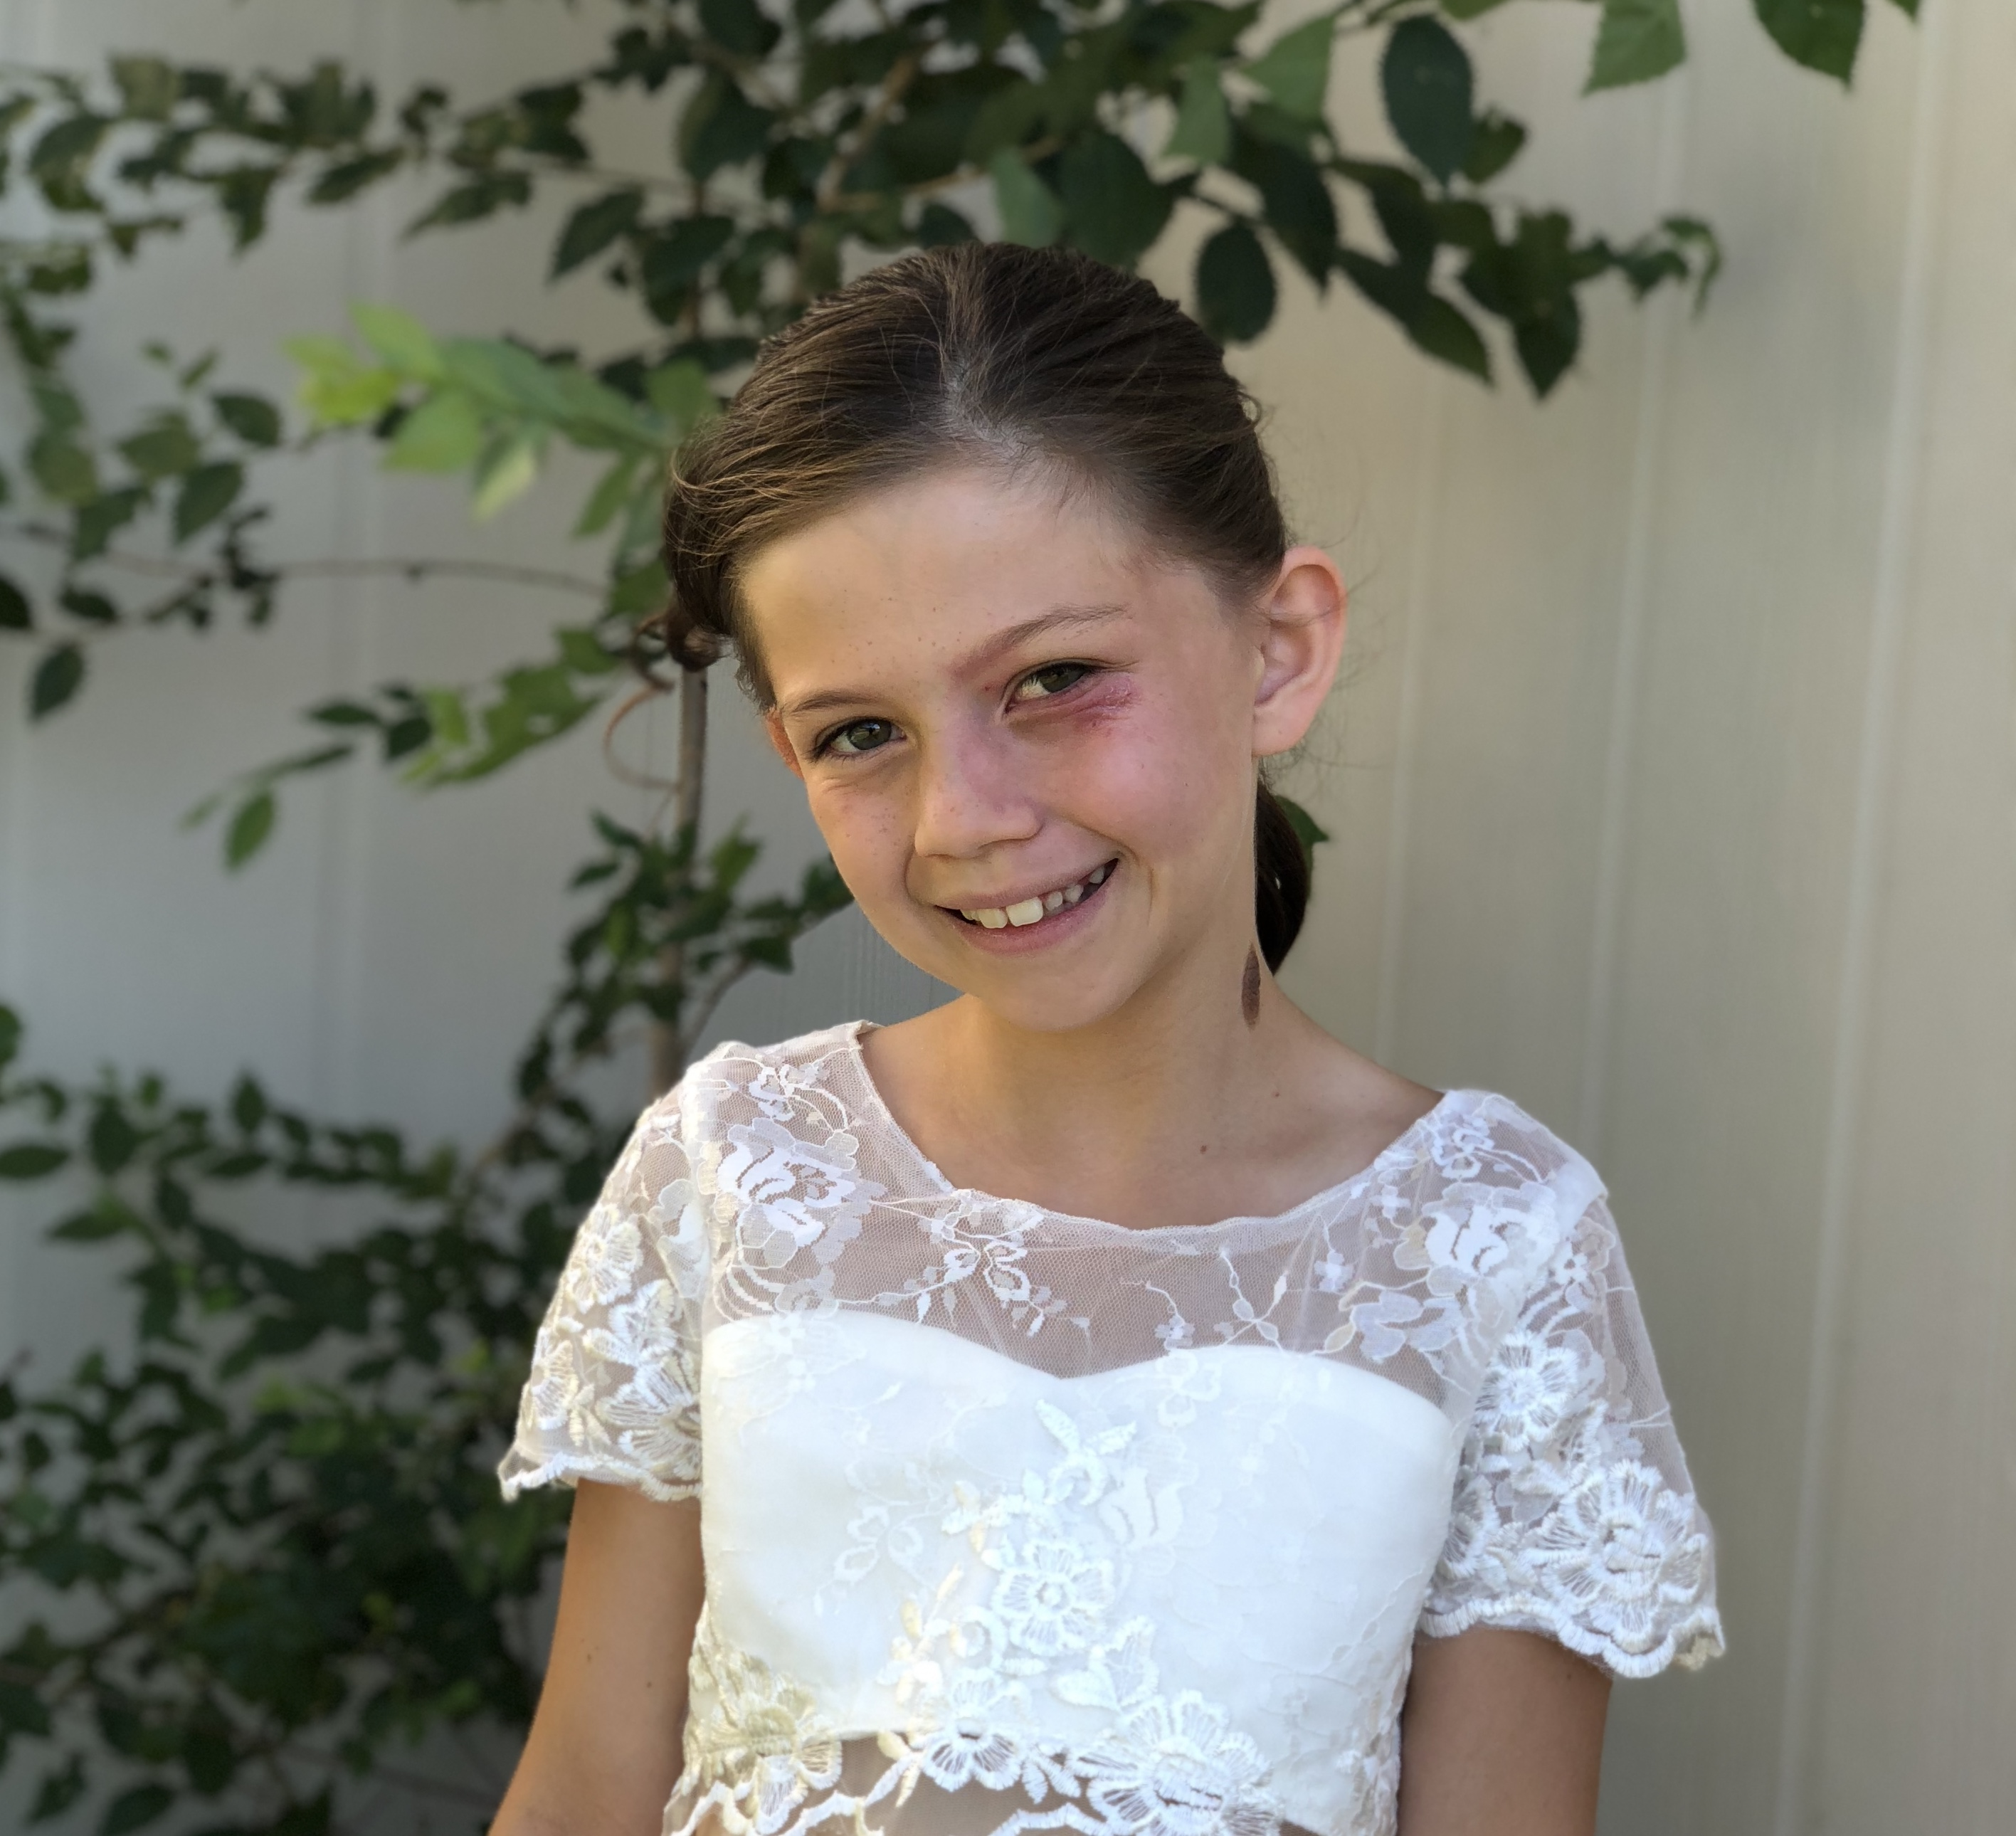 A picture of a child smiling at the camera, standing outside, showing the birthmark on her left cheek.